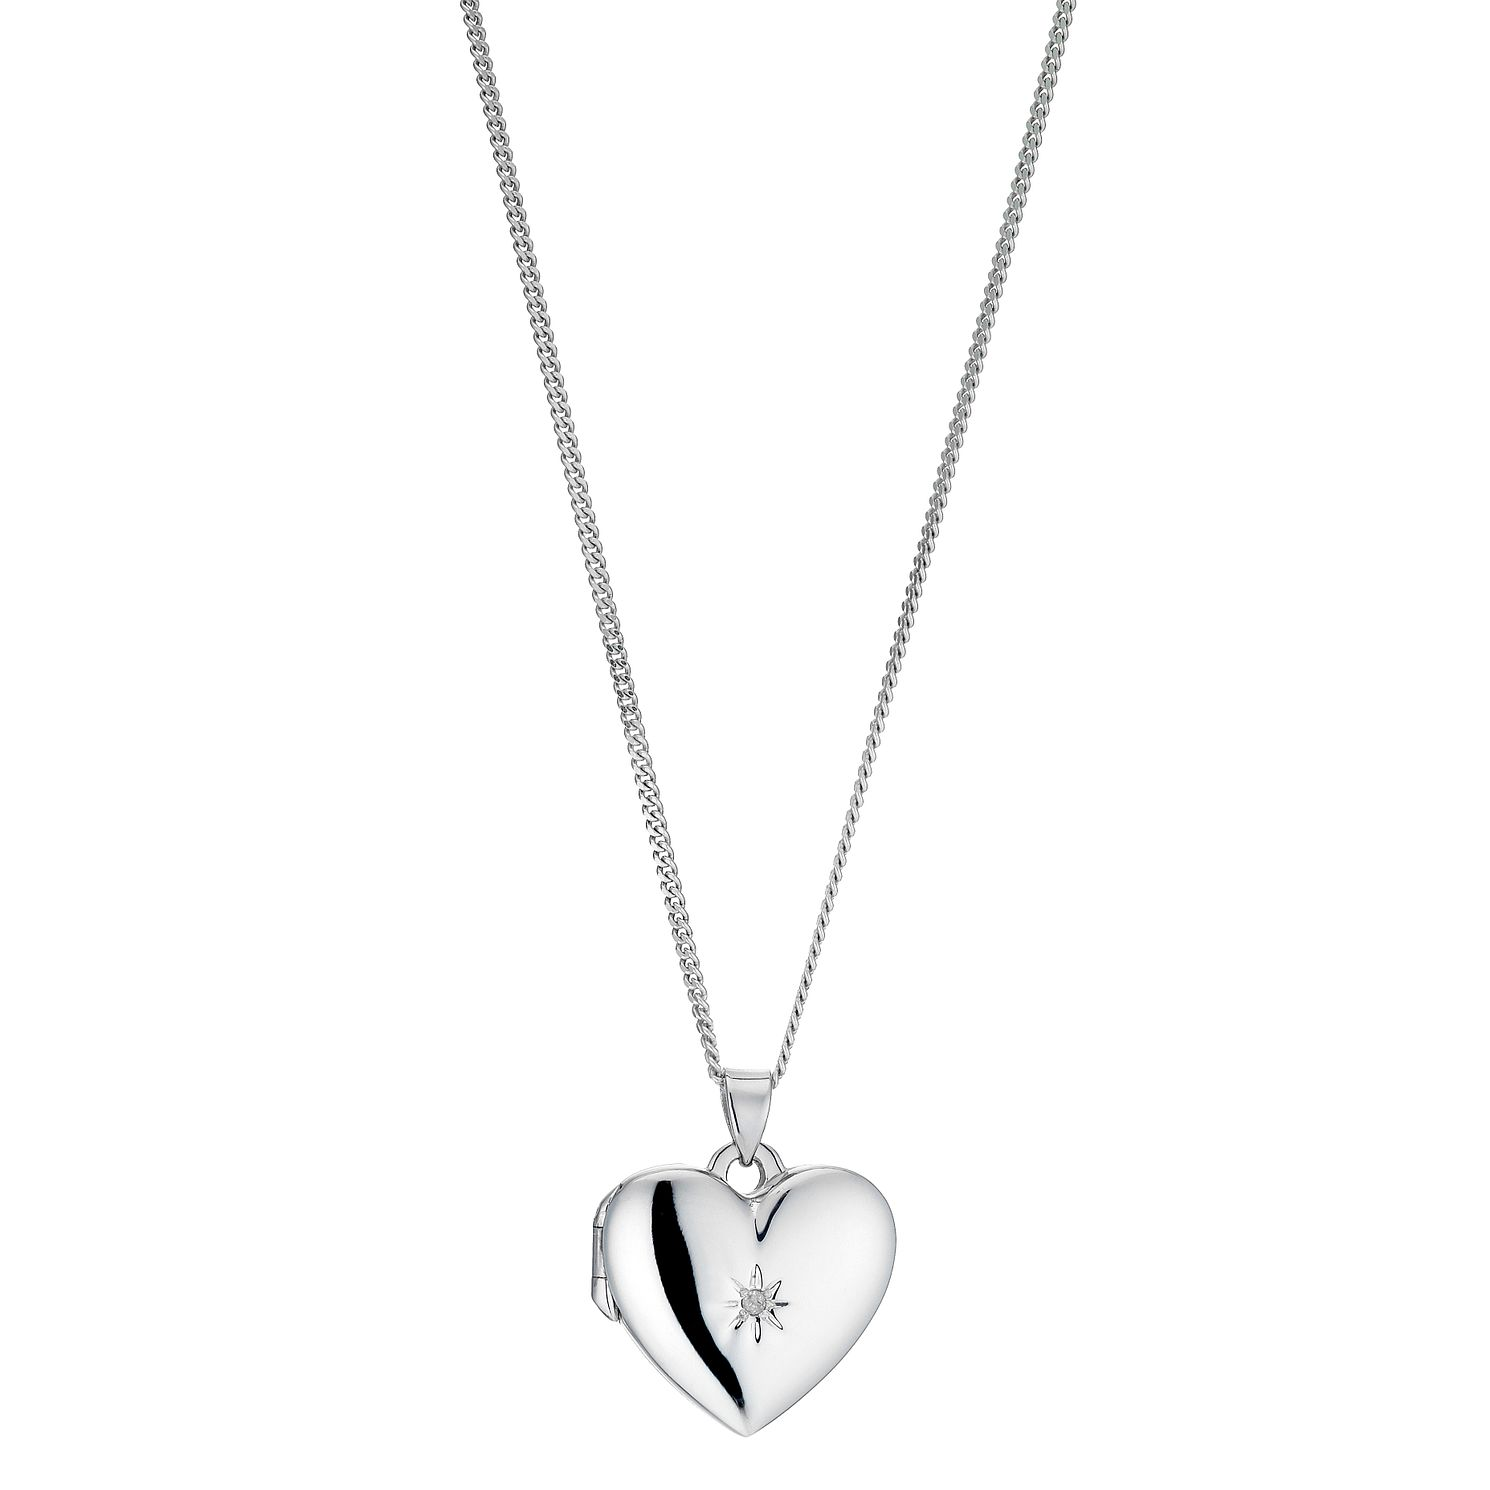 ckciml dp ornami sterling heart curb cm with ladies jewellery silver lockets uk locket filigree chain co amazon